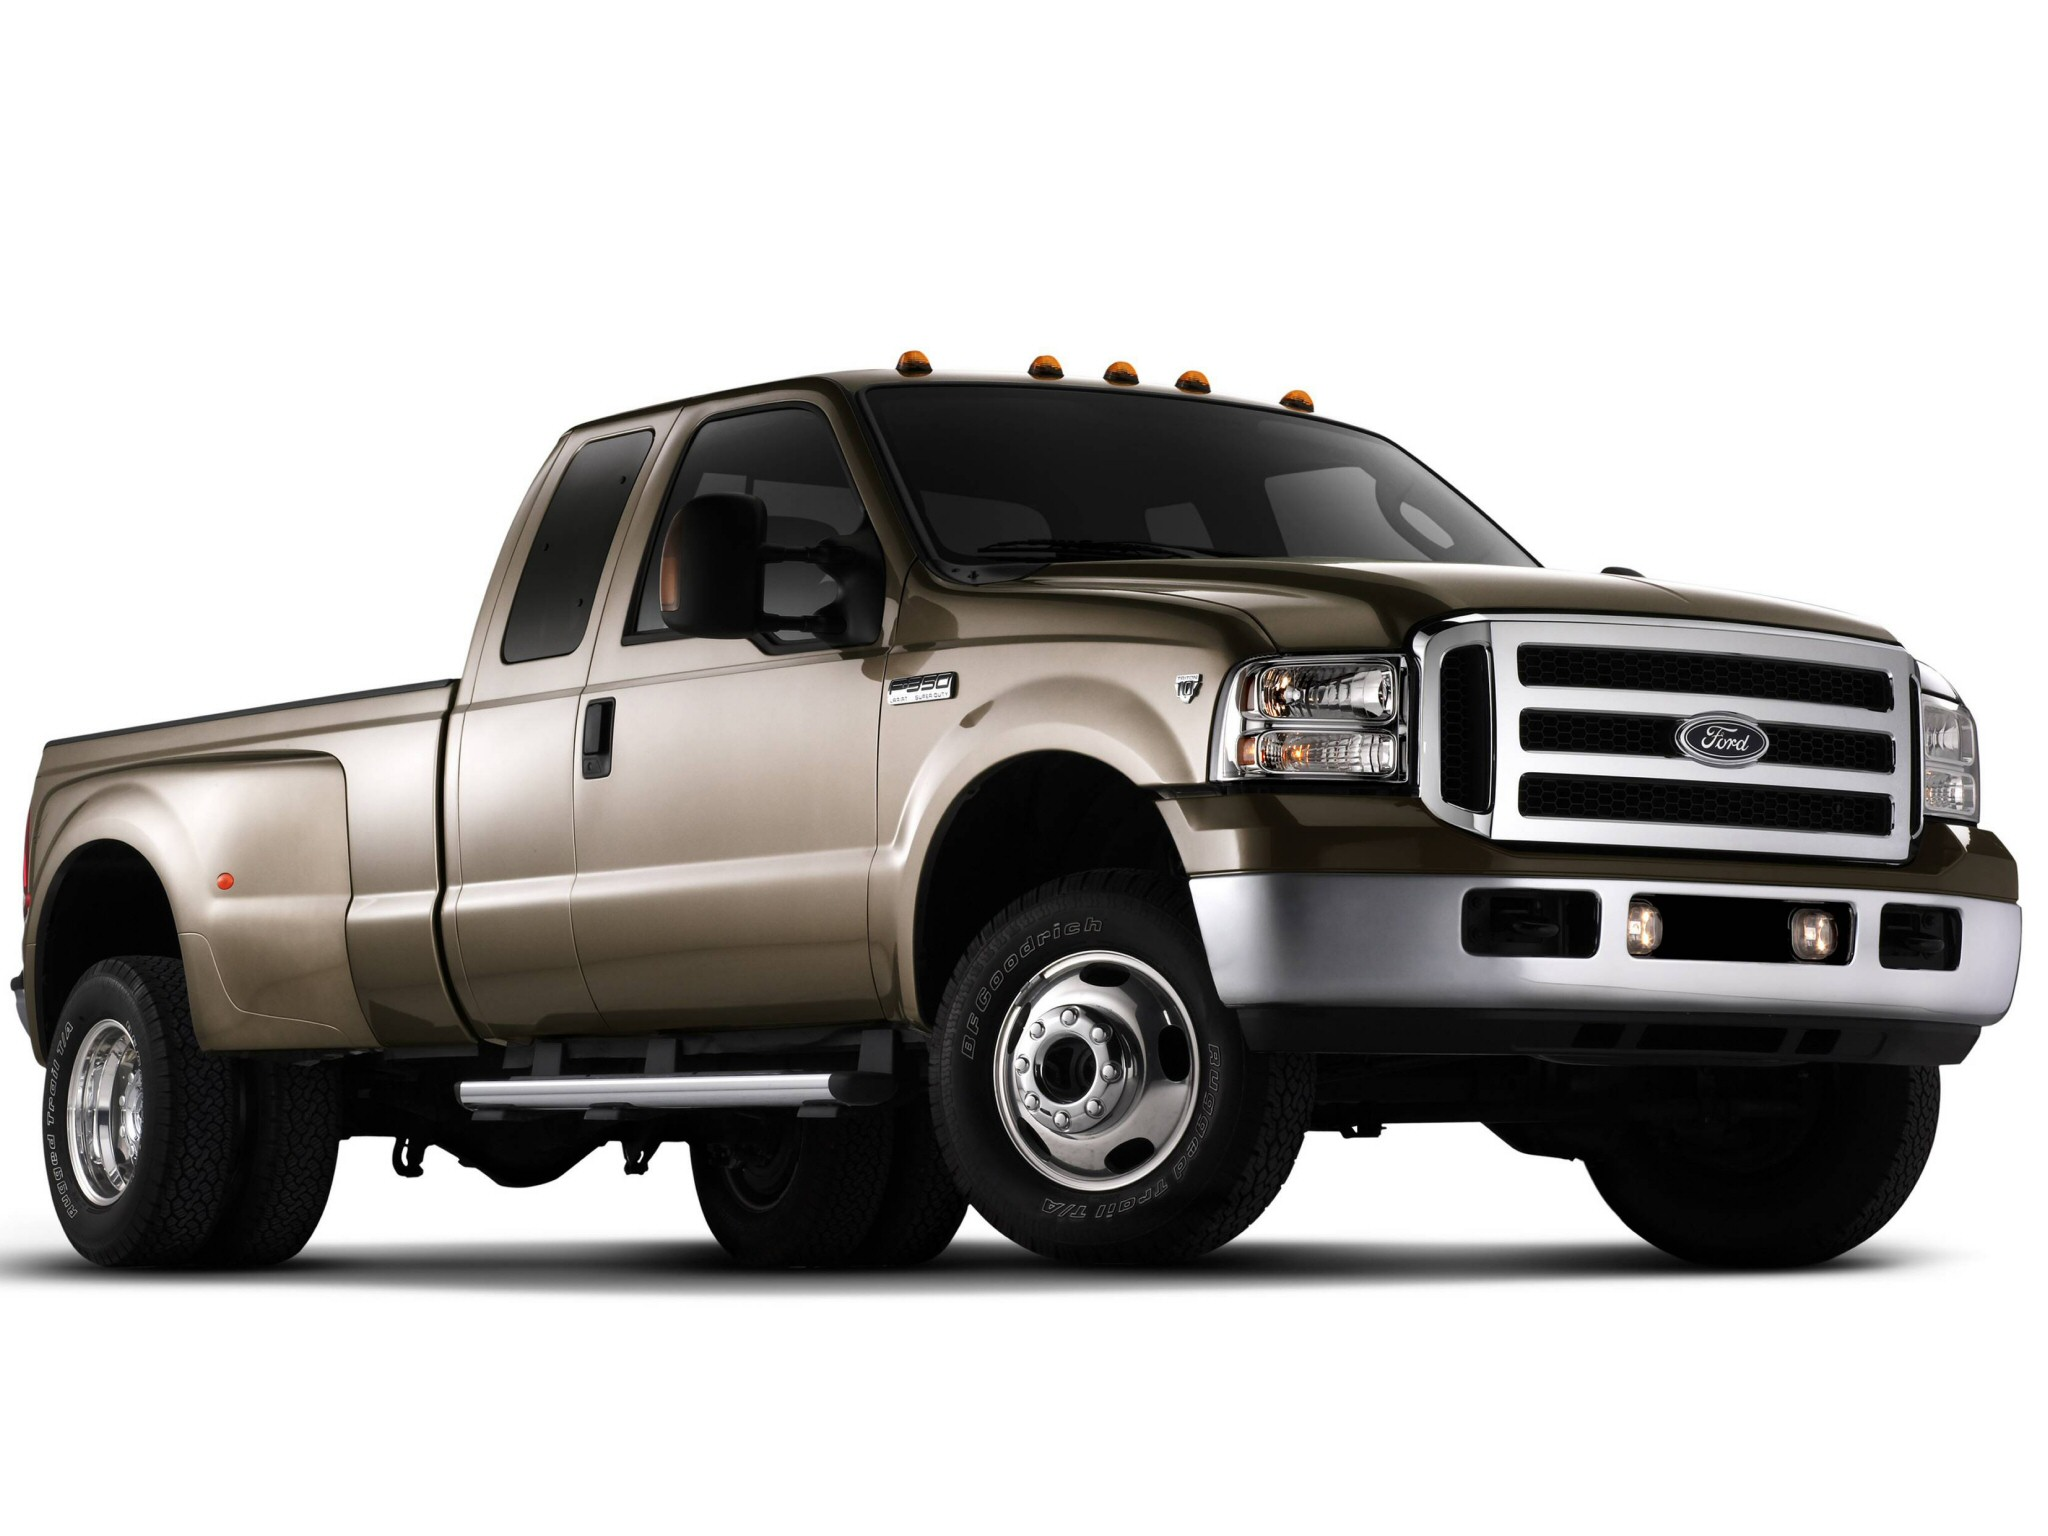 2010 Ford F-350 Super Duty - Information and photos ...